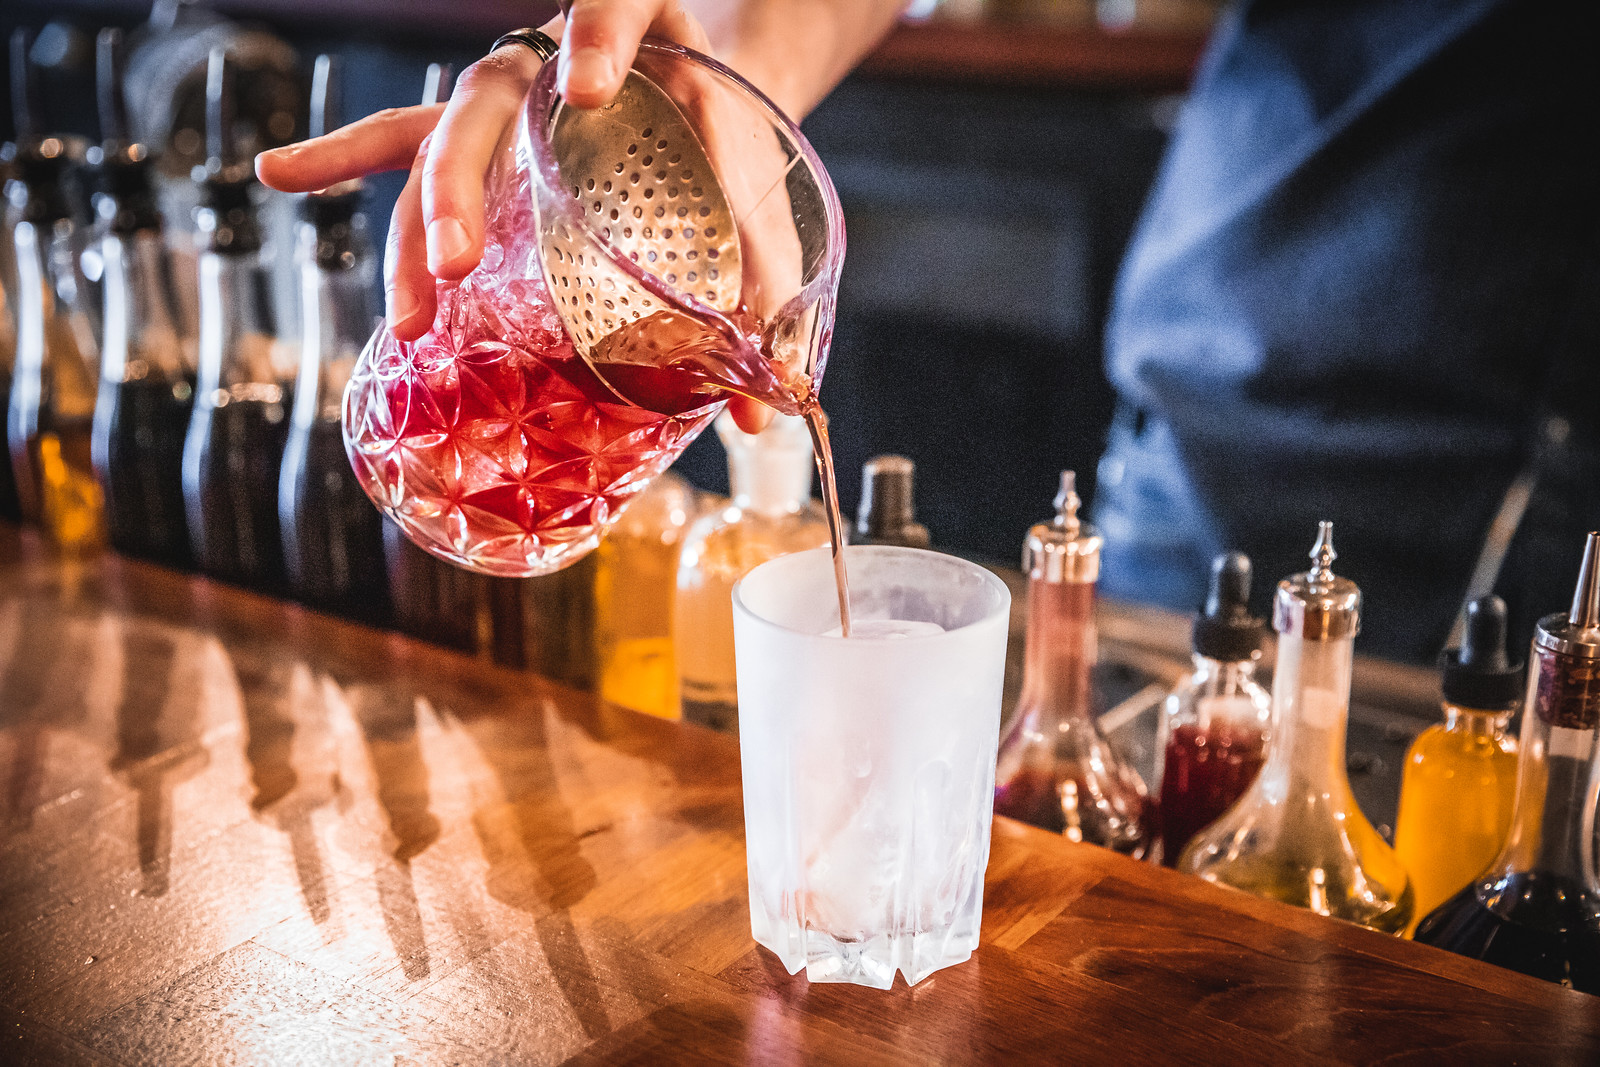 A red drink getting poured into a frosty glass.